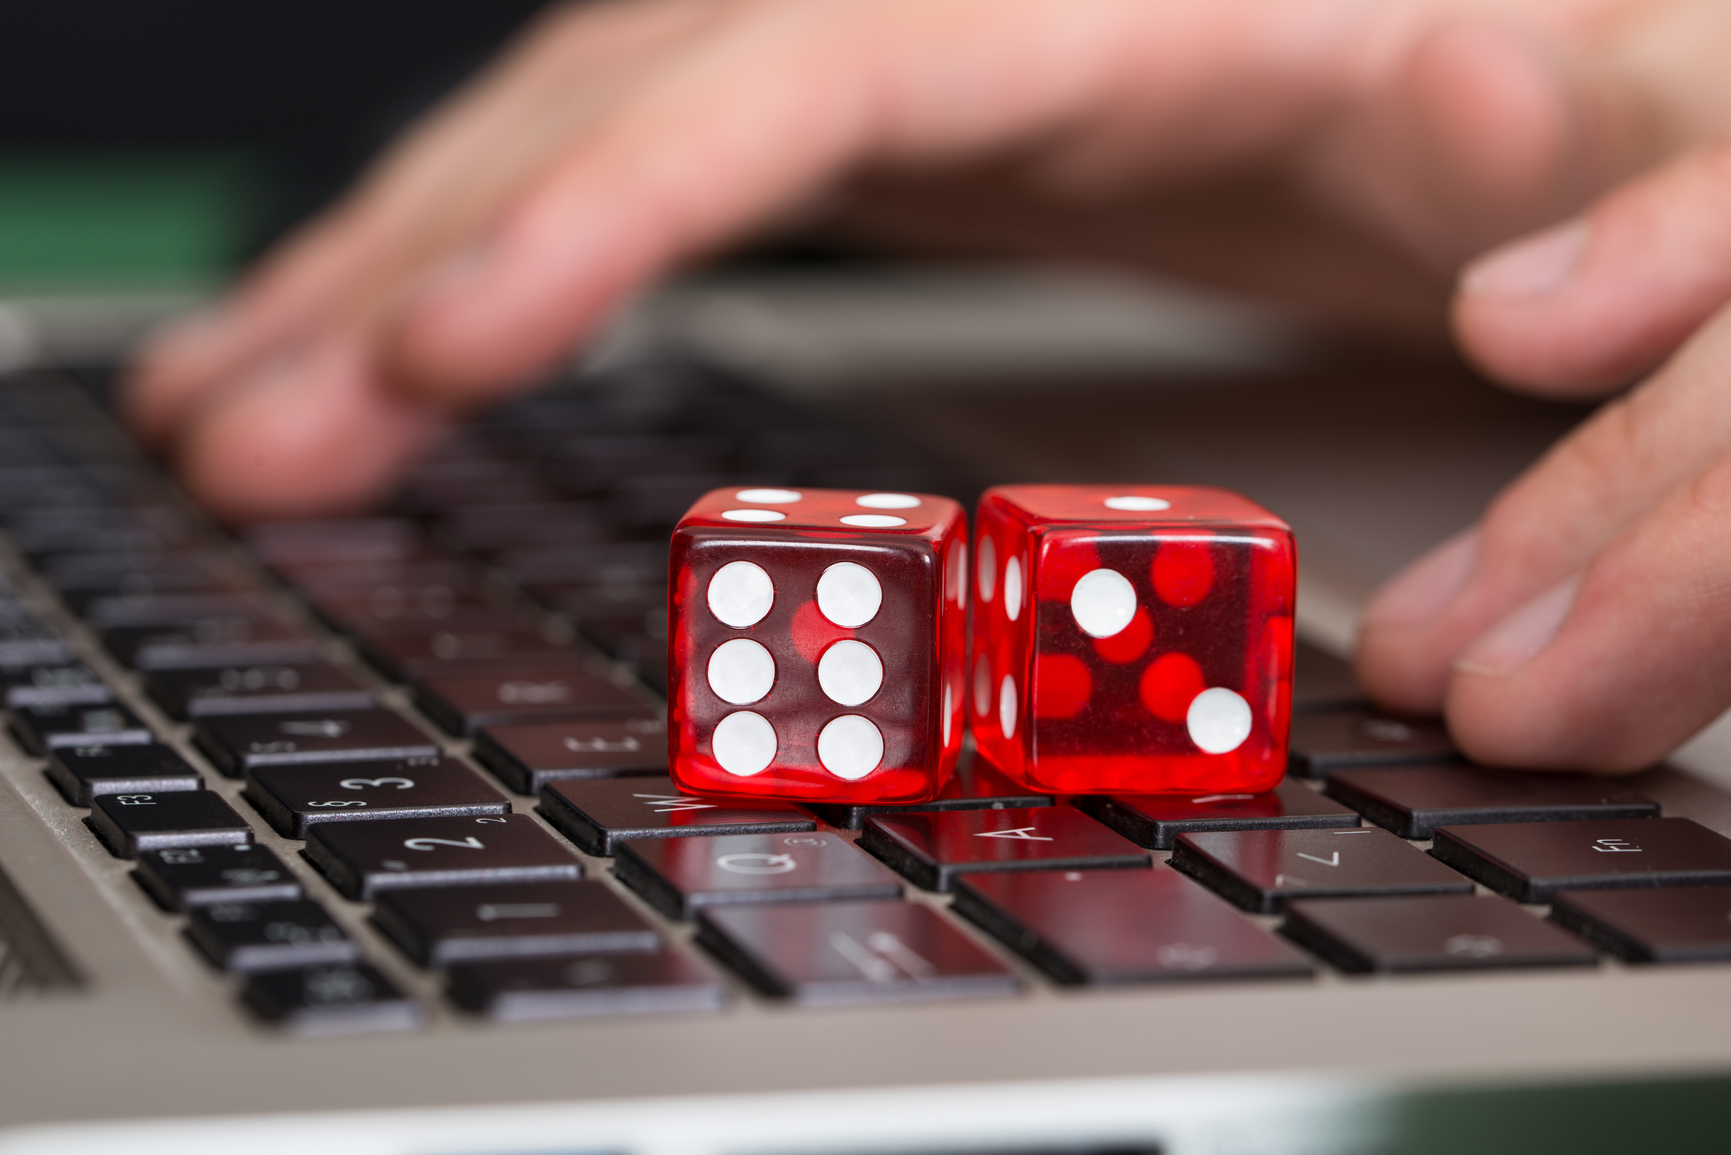 DITCH OFFLINE CASINOS; ONLINE CASINOS ARE THE WAY TO GO